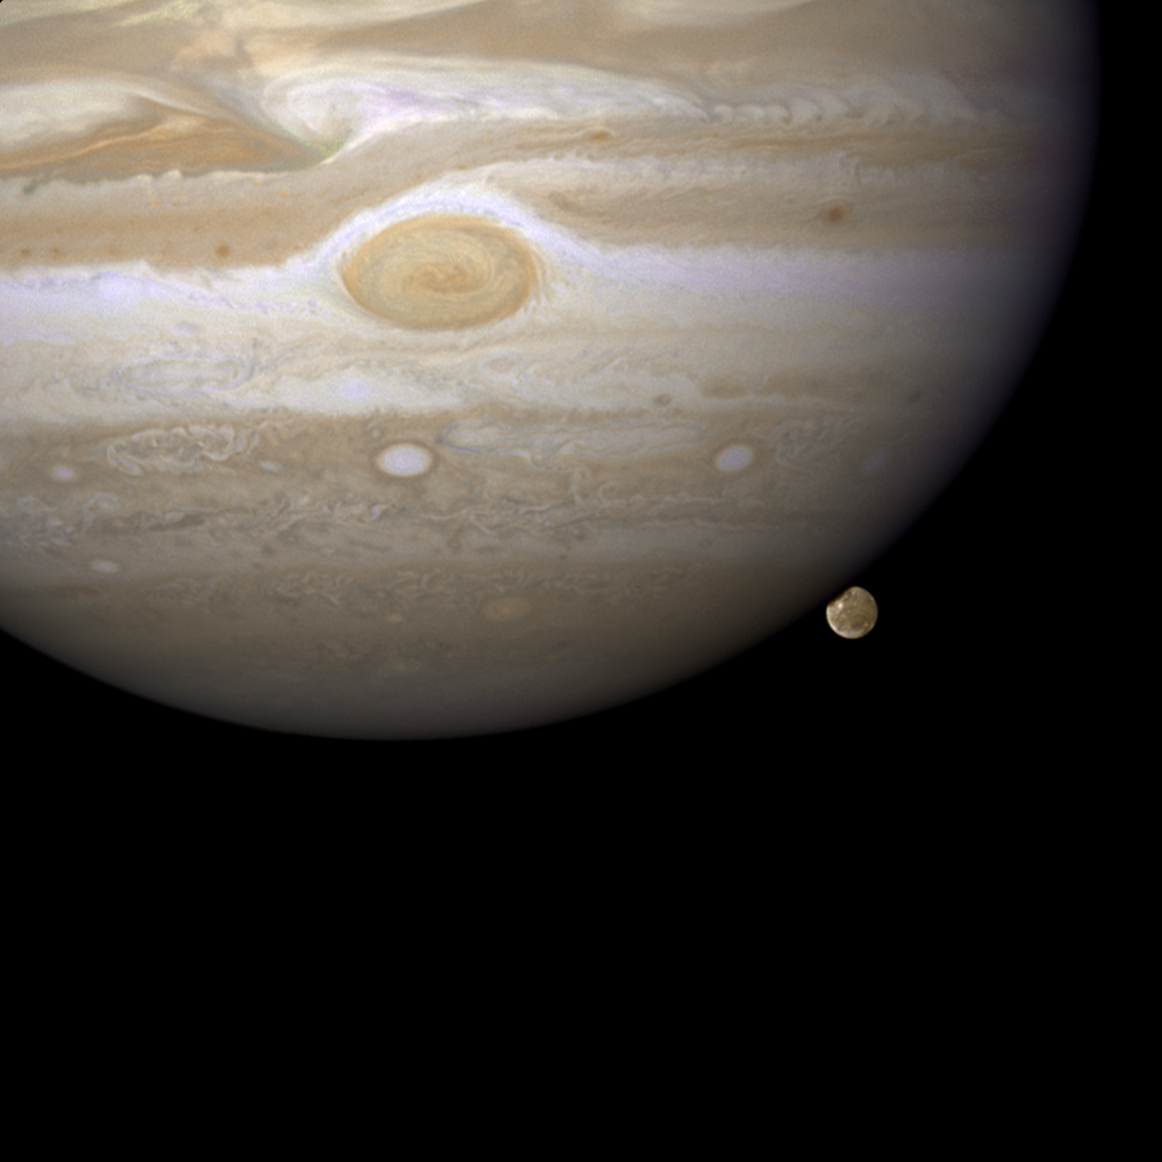 Jupiter and Callisto from Hubble